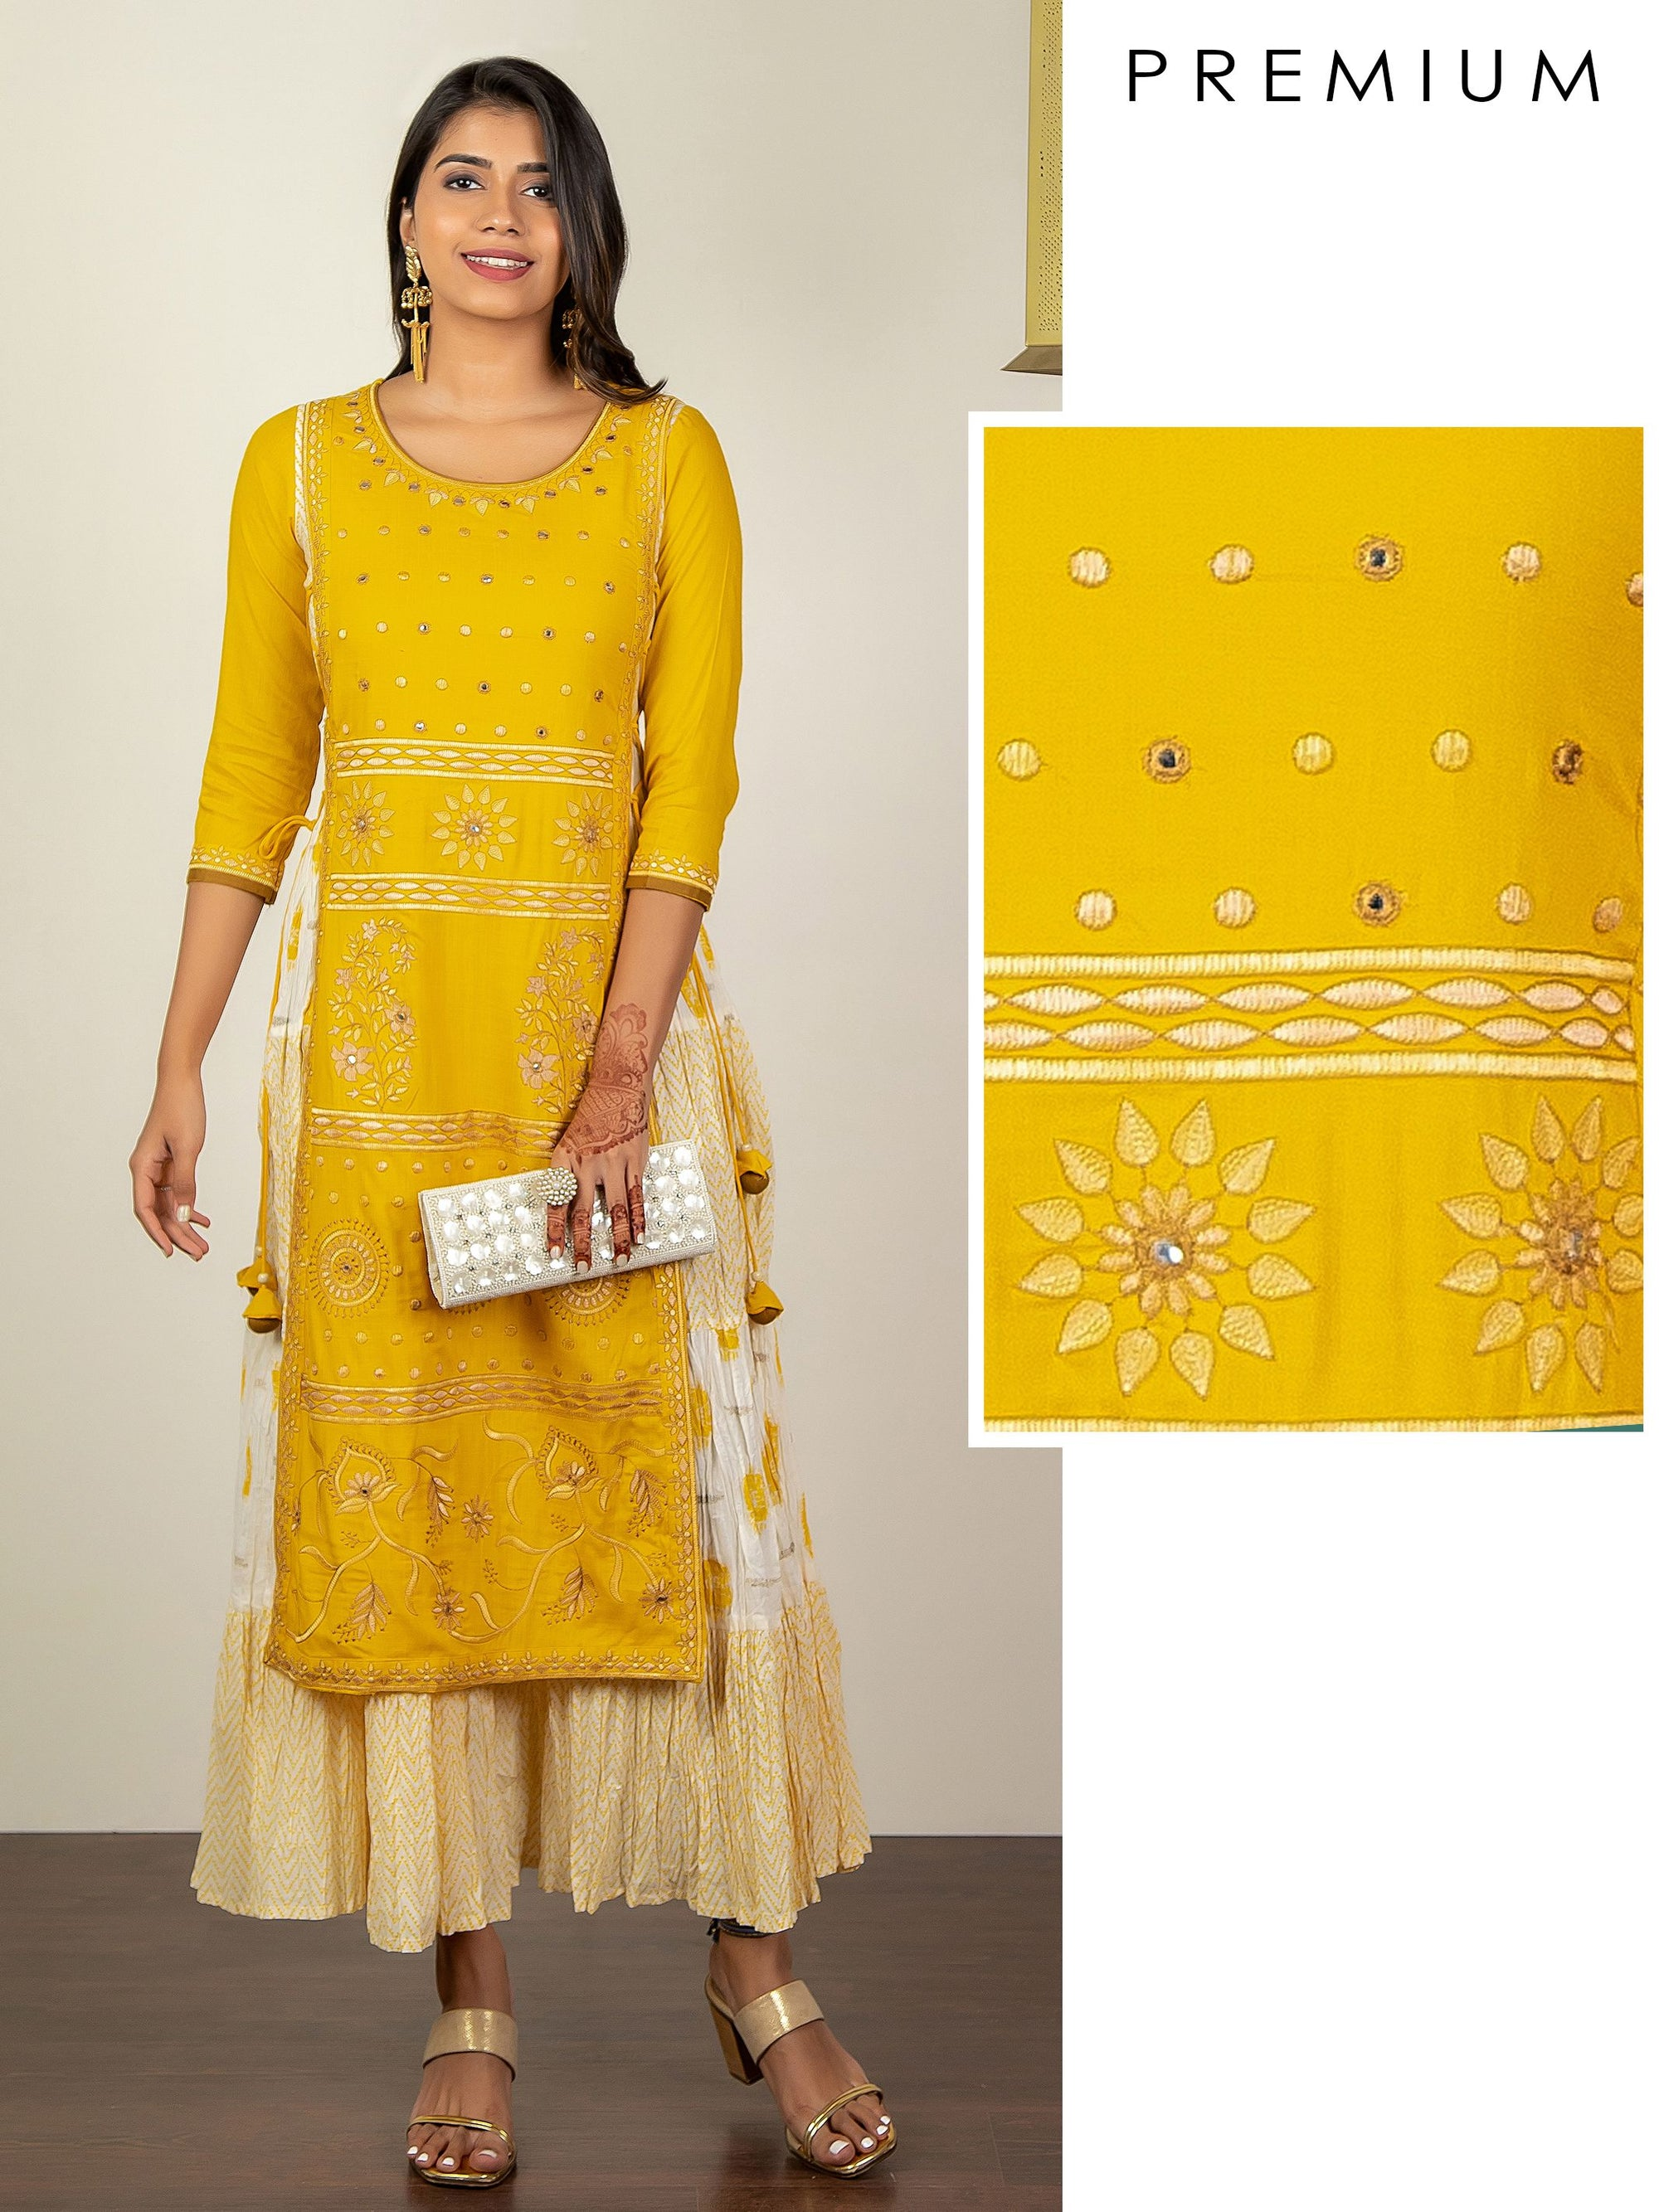 Floral Embroidery With Mirror Work And Crushed Overlay Kurta - Yellow